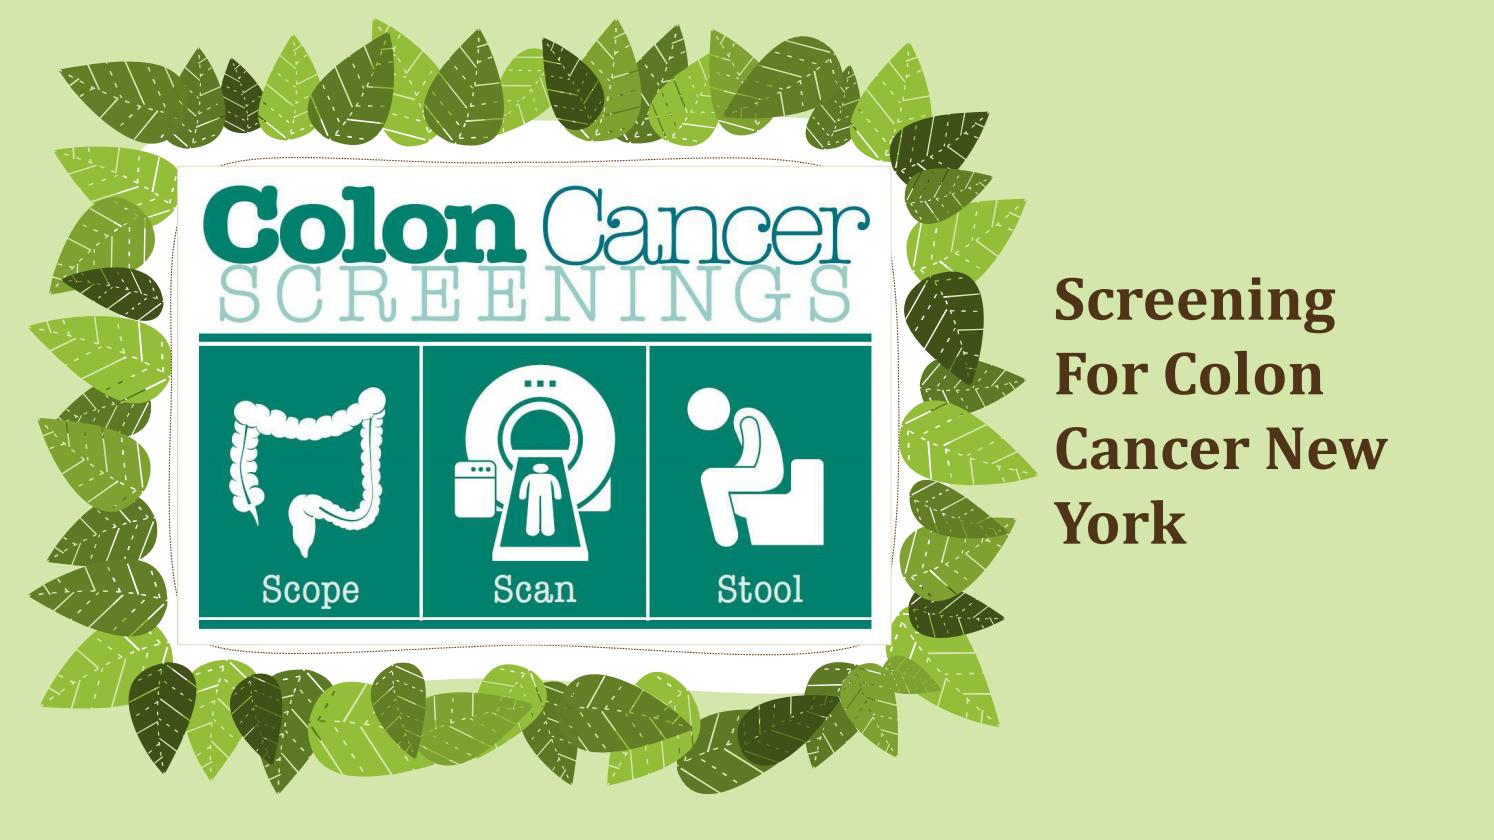 Screening For Colon Cancer New York At Doctorgrosman Com By Doctor Grosman Issuu